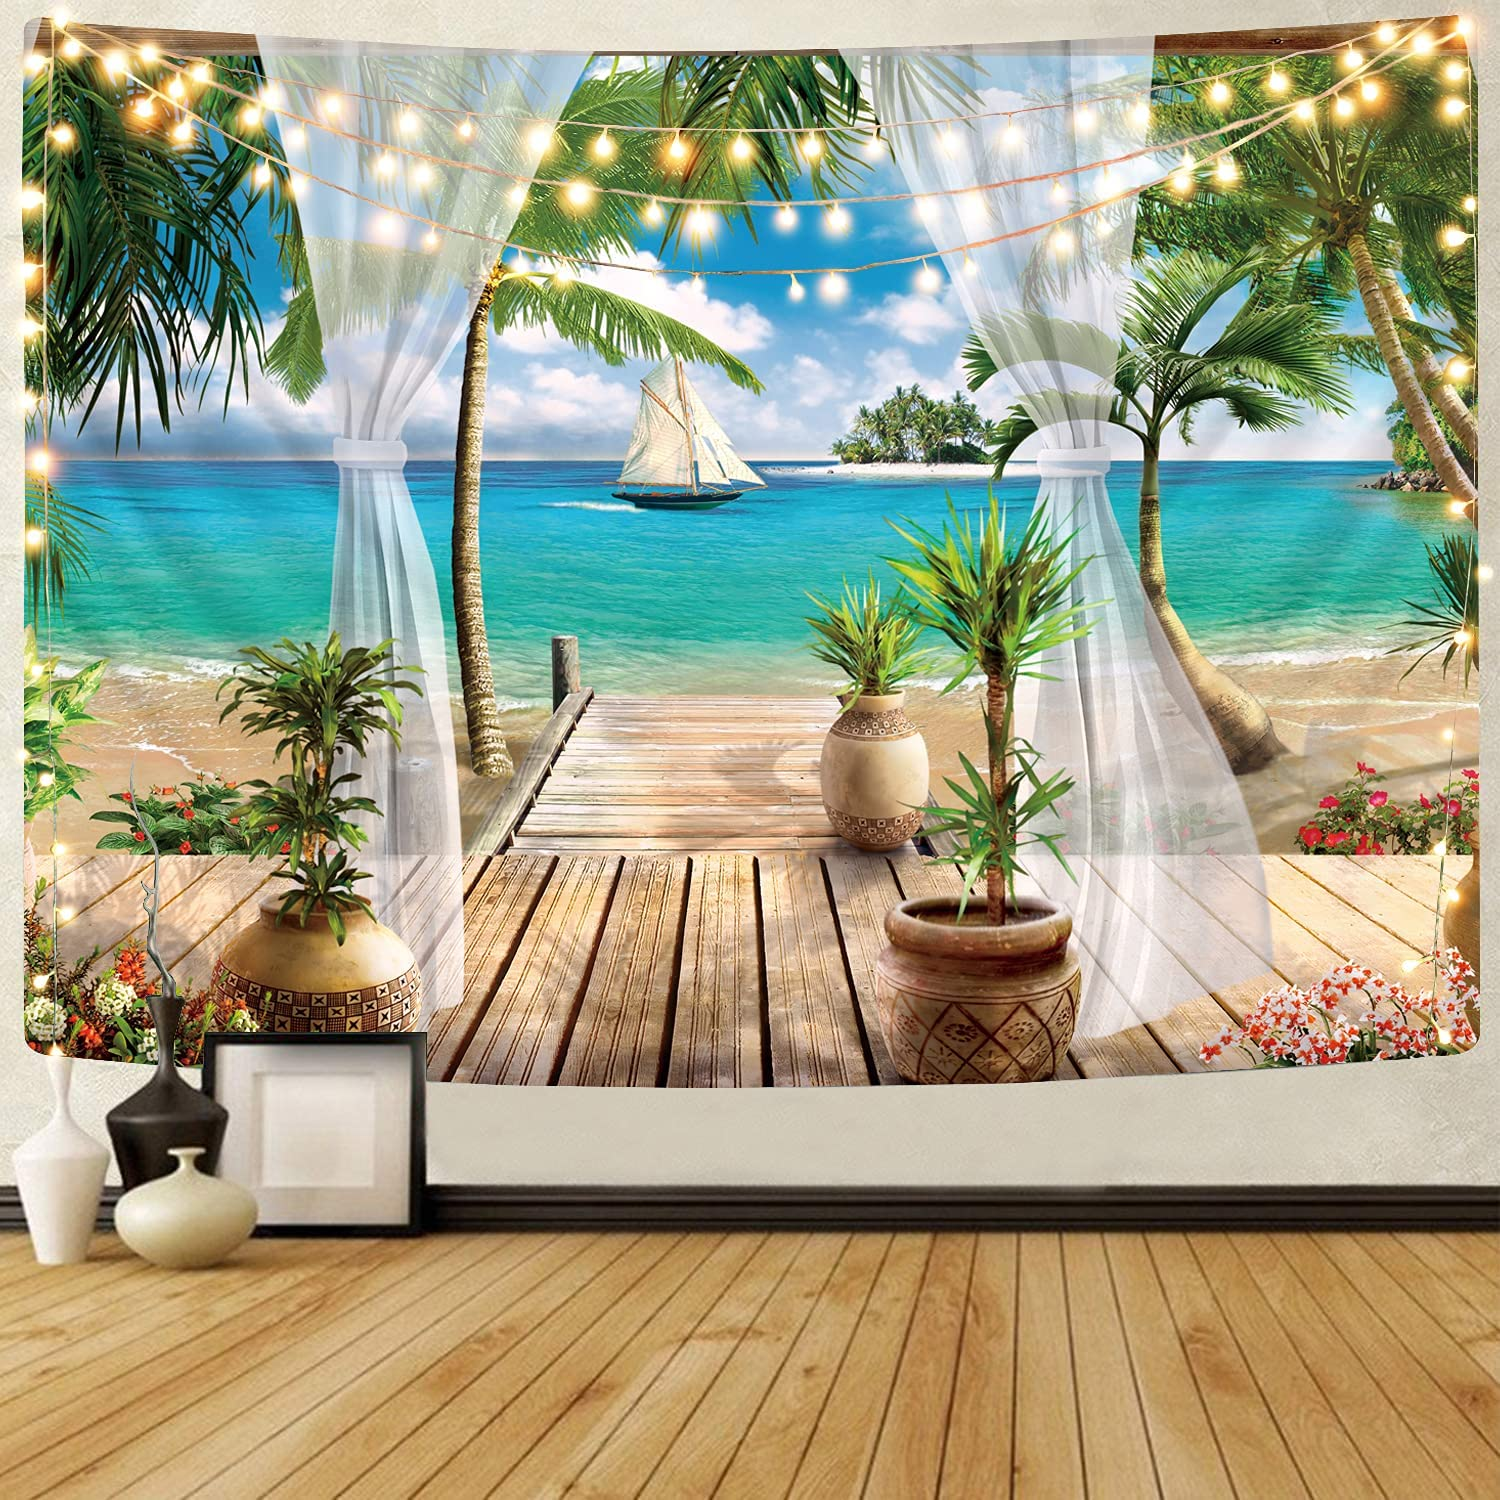 Beach Tapestry Wall Hanging for Bedroom - KYKU Beach Decorations for Home Wall Decor Ocean Tapestry for Bedroom Tropical Coastal Hawaii Nature Living Room Dorm Themed (59.1